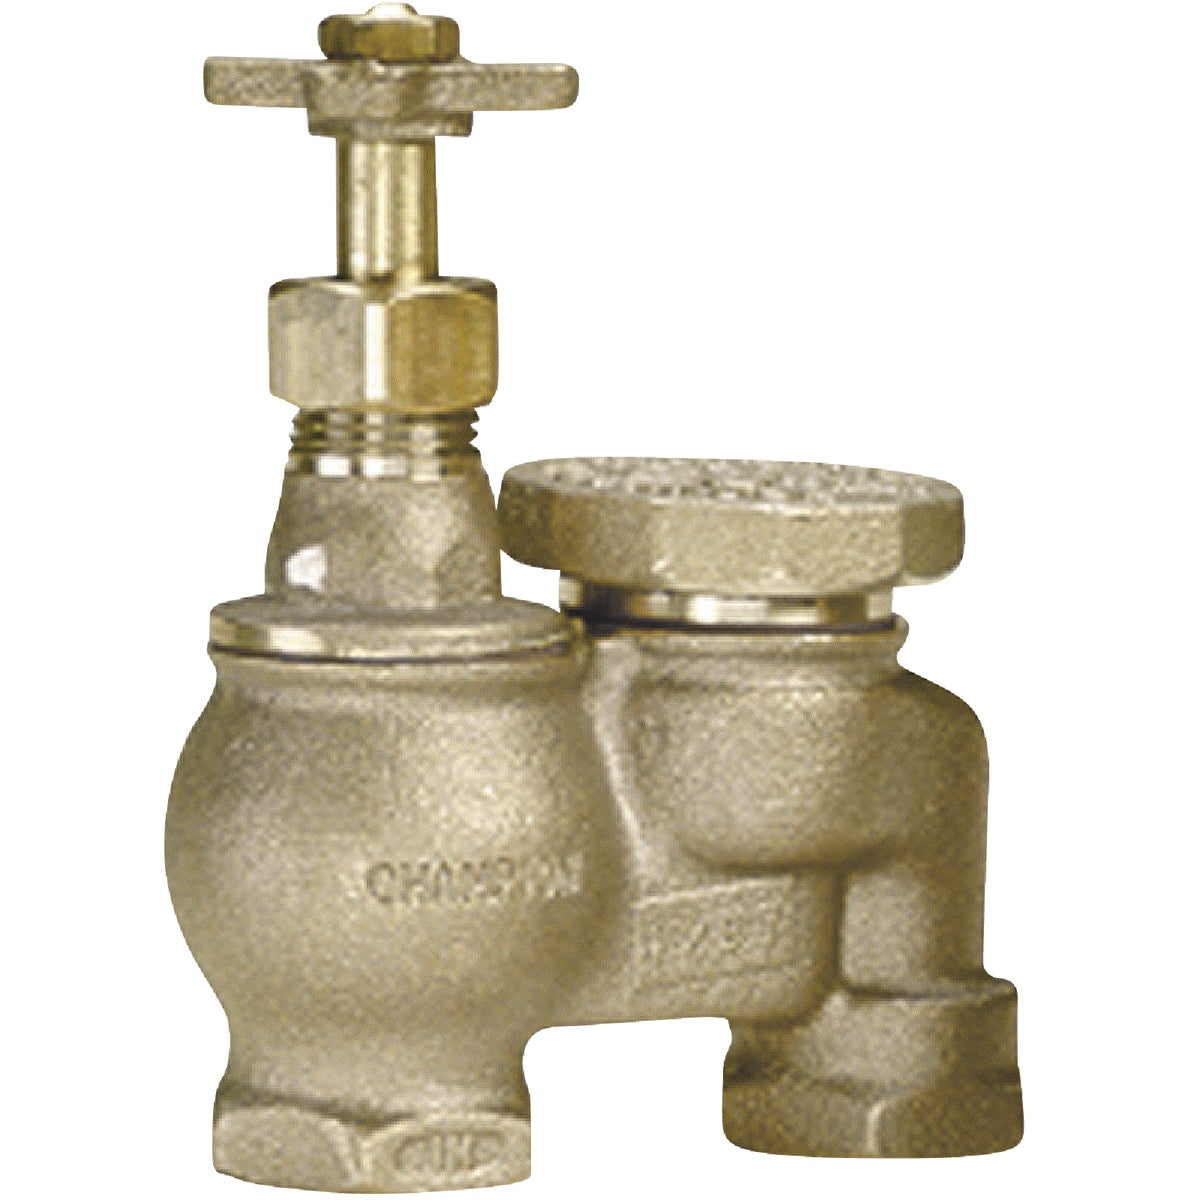 "1"" ANTI-SYPHON VALVE - IASV100 by Champion Arrowhead"